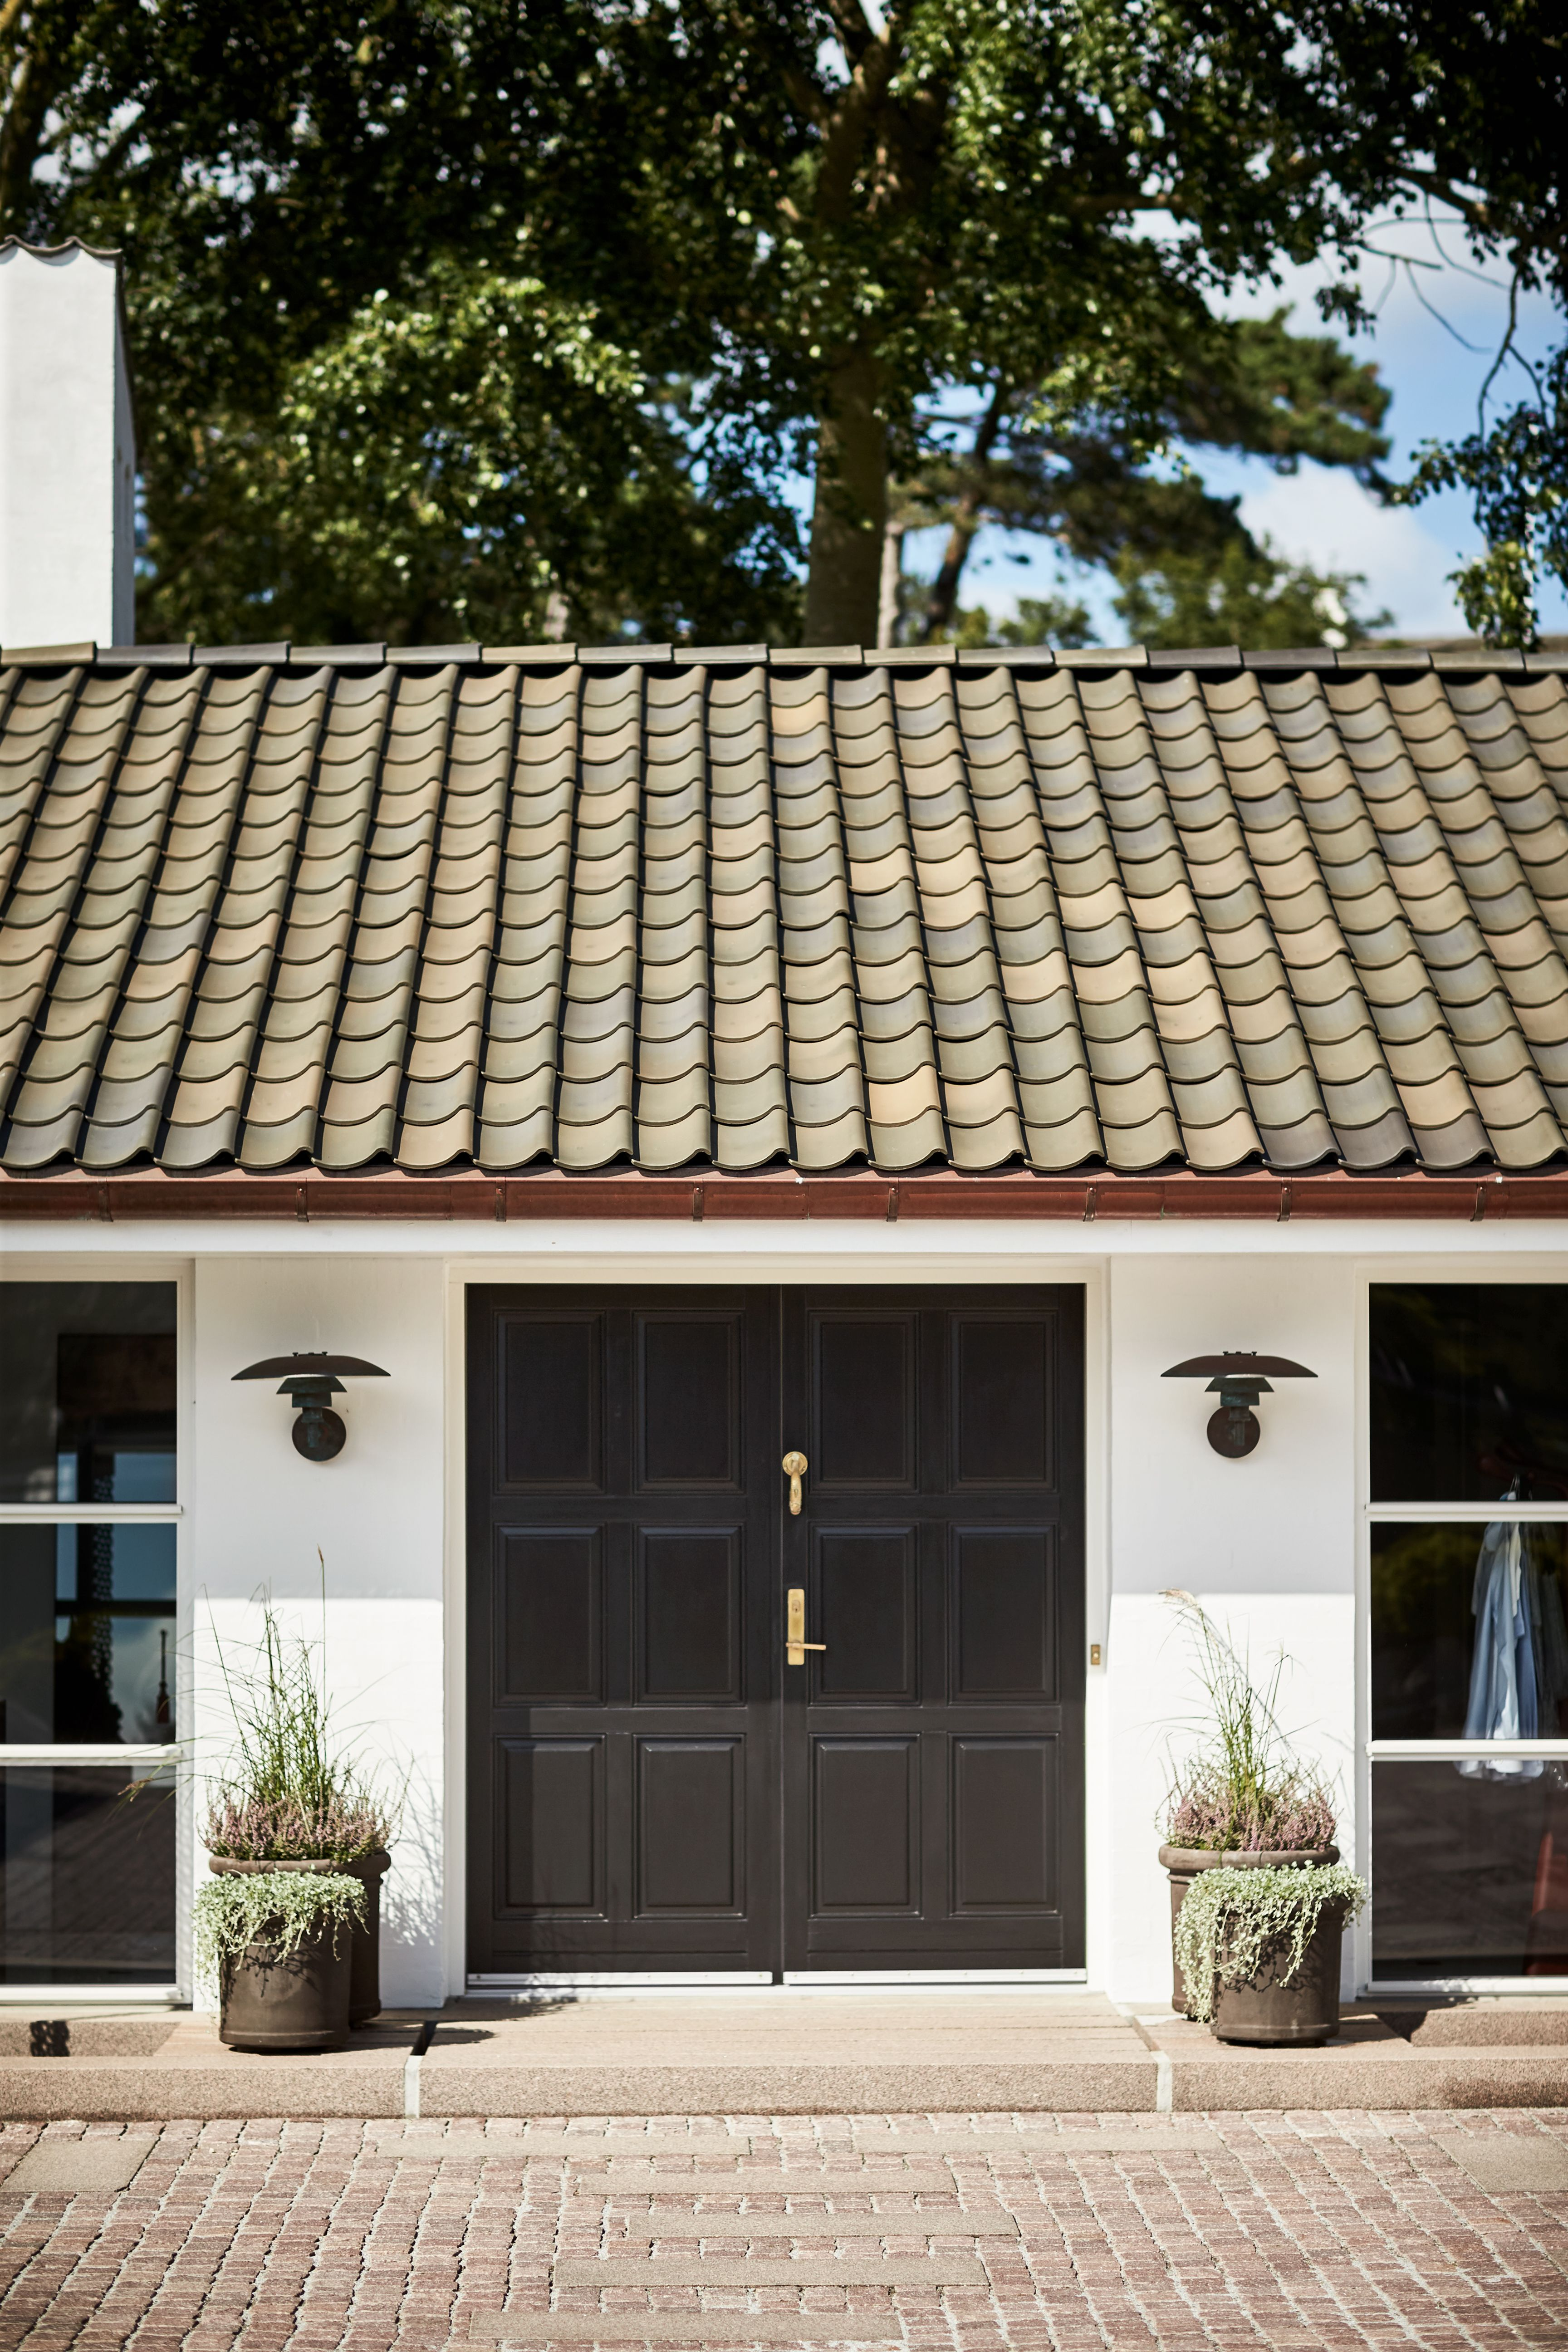 Rt 820 Hojslev Small Danish Size Blue Softened Nuanced Pantile Mediterranean Homes Exterior House Exterior Exterior Tiles